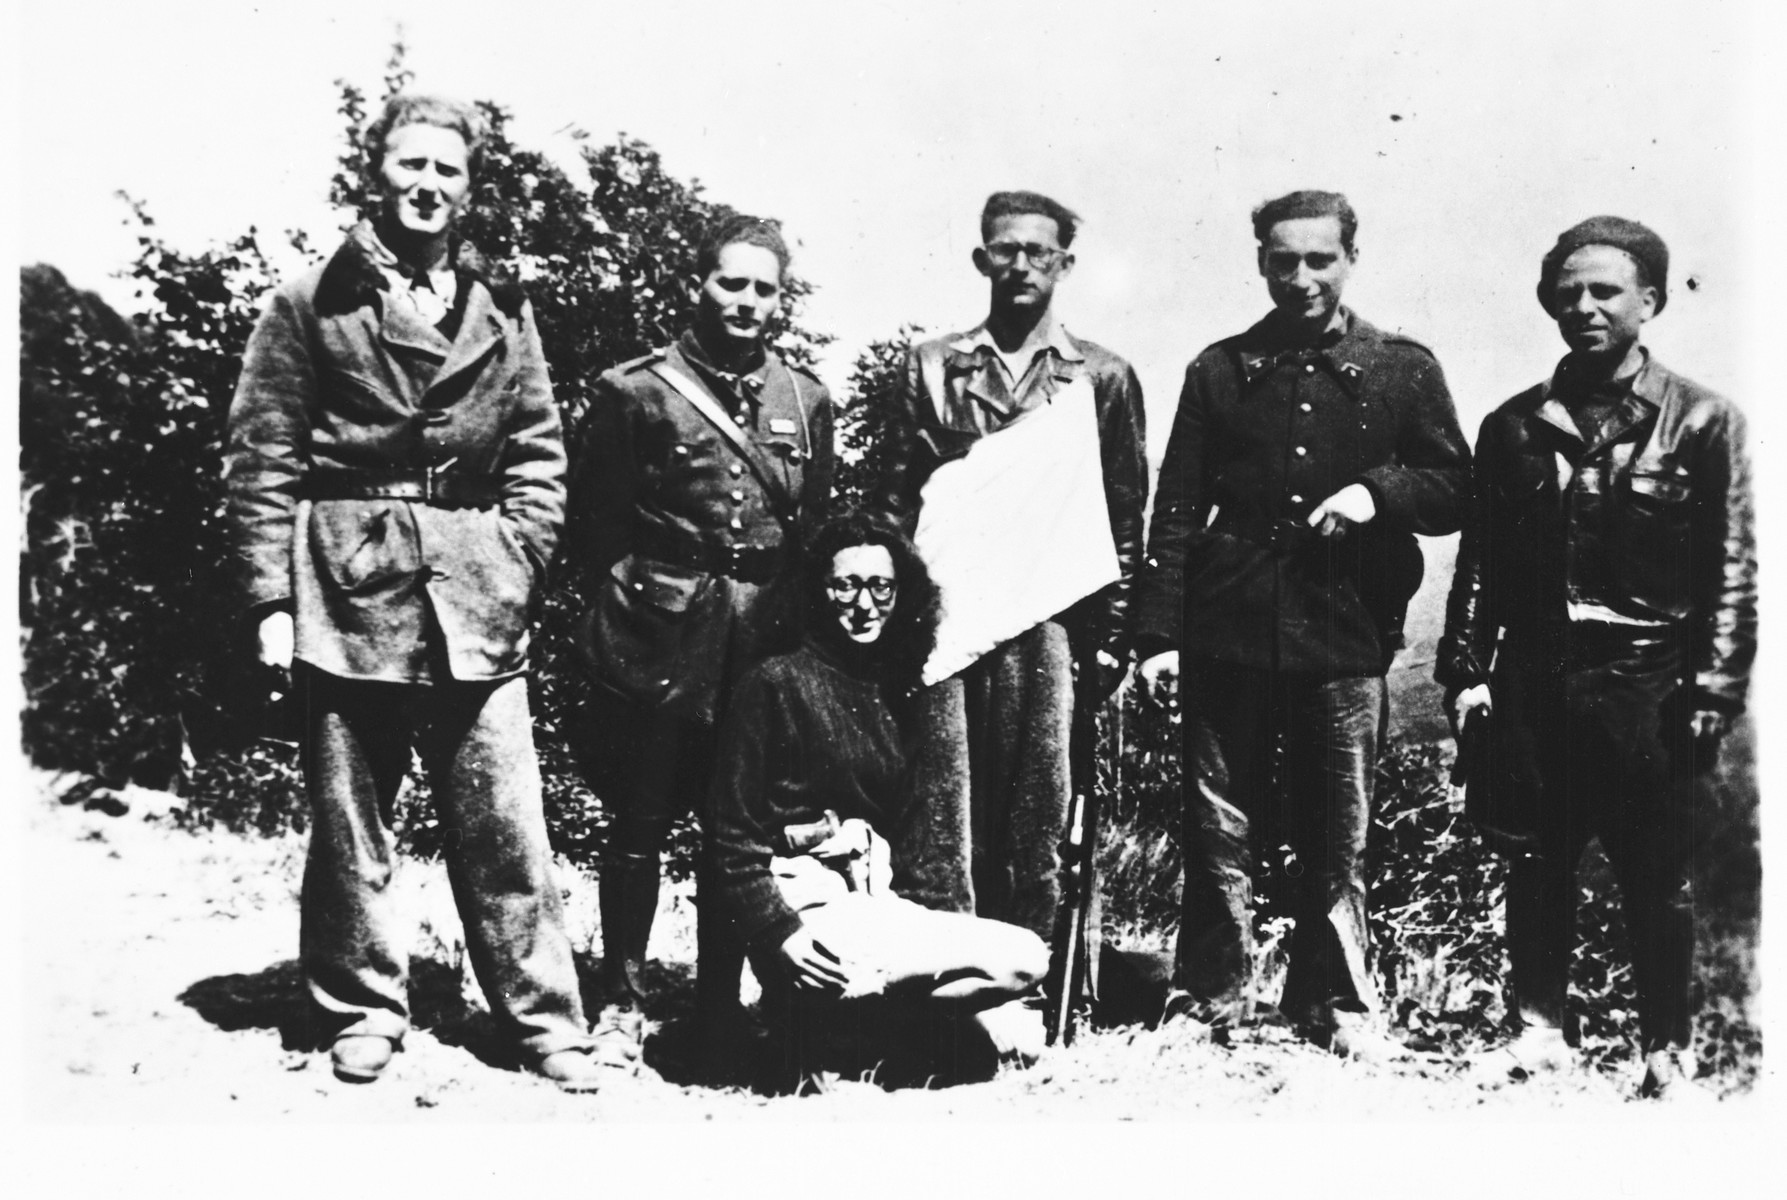 Group portrait of members of the French Jewish resistance group Armée Juive dressed in military uniform.  During the last year of the war, the Armée Juive joined forces with the Maquis resistance.  Among those pictured are Patricia Graff-Rubel (kneeling), and standing from left to right: Jean-Jacques Fraicent (Frayman), Jacques Lazarus (Jacquel) who served as the AJ's military instructor, Henri Broder, Pierre Loeb and Albert Cohen (Bebe).